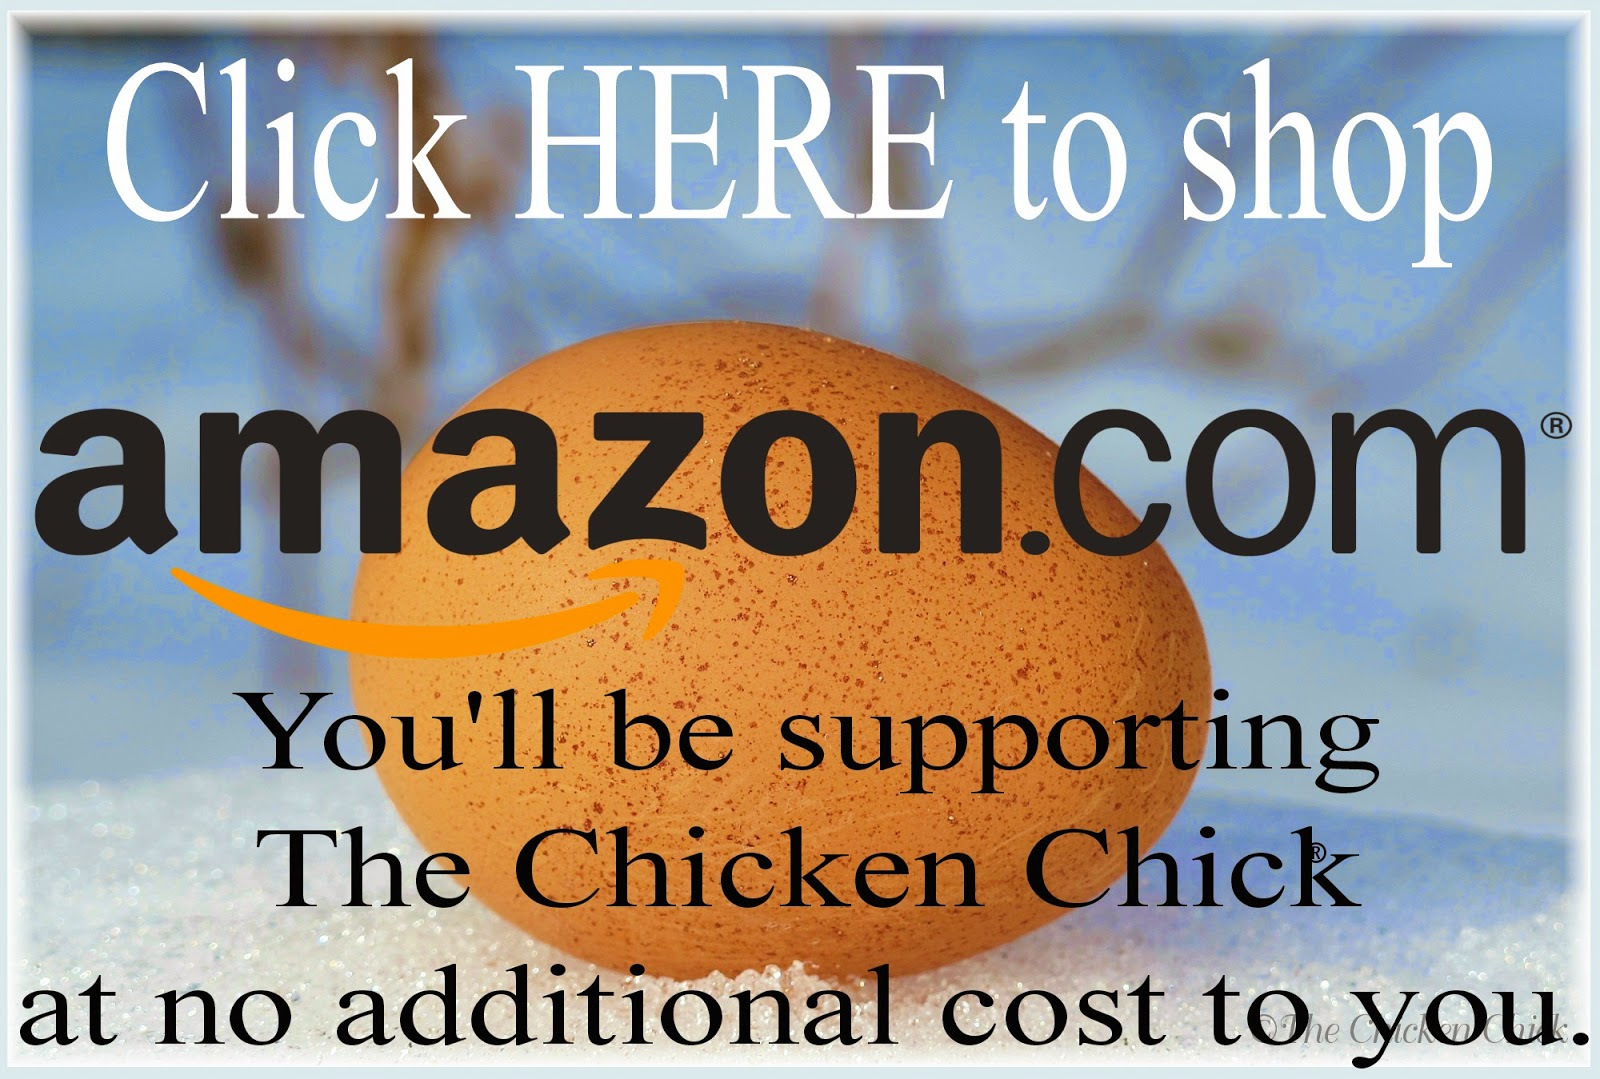 The Chicken Chick Amazon affiliate link